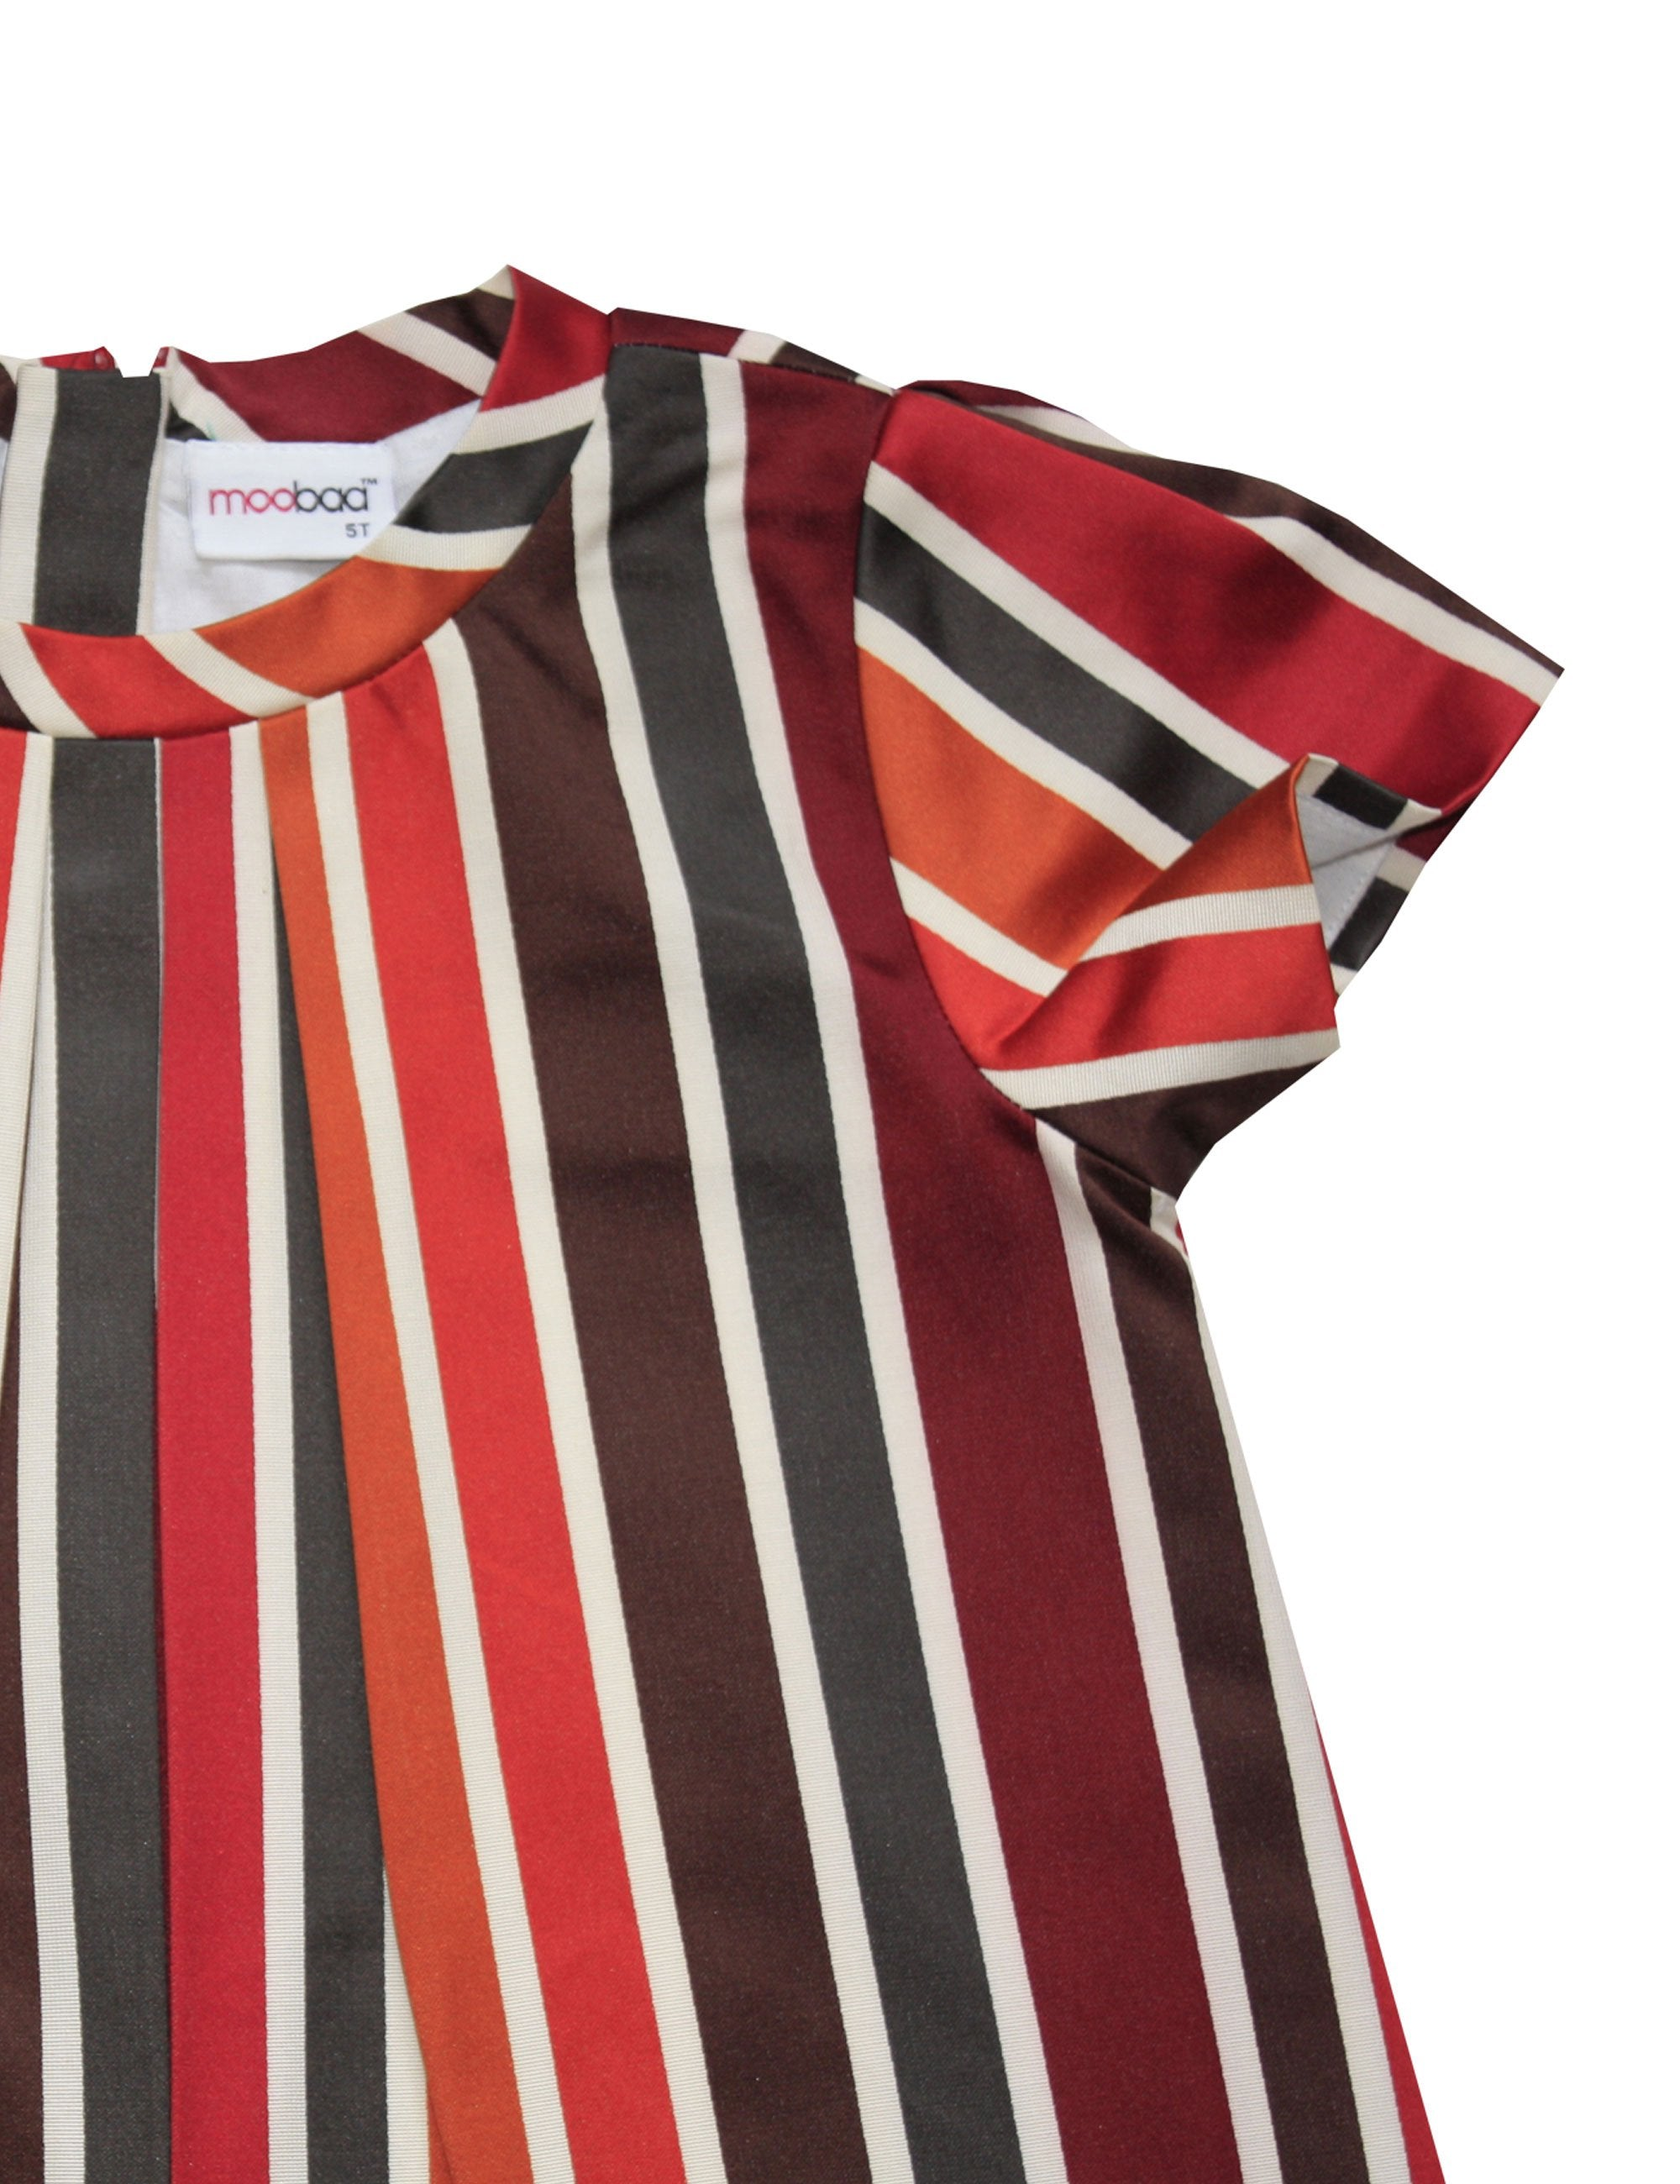 Cotton Stripe Dress in Red Colour for Girls